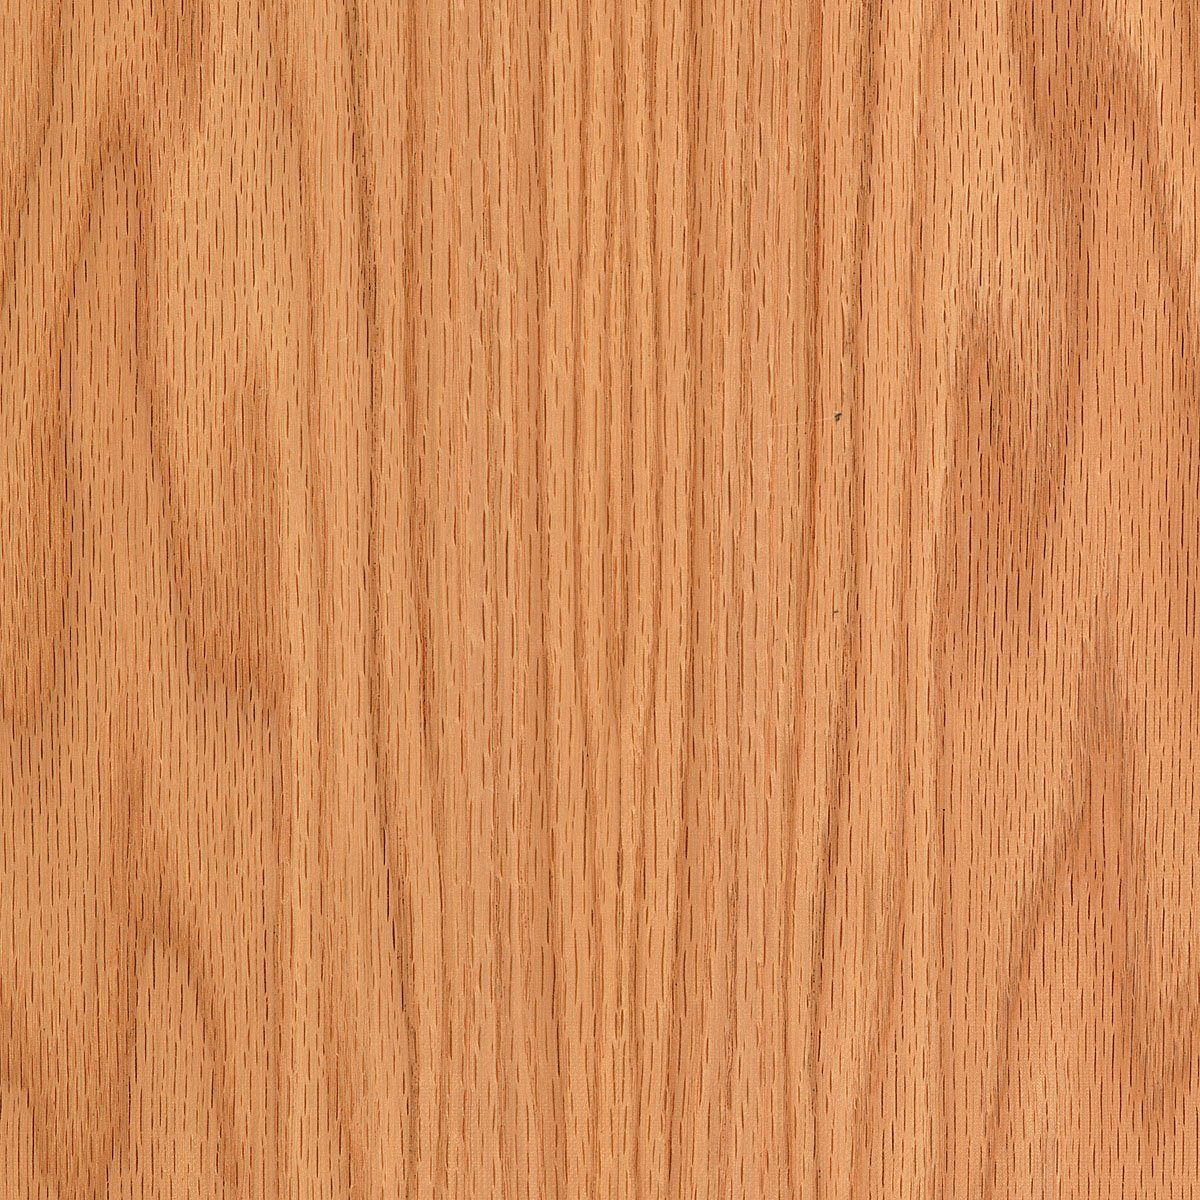 Red oak wood veneer plain sliced mil sheet ebay